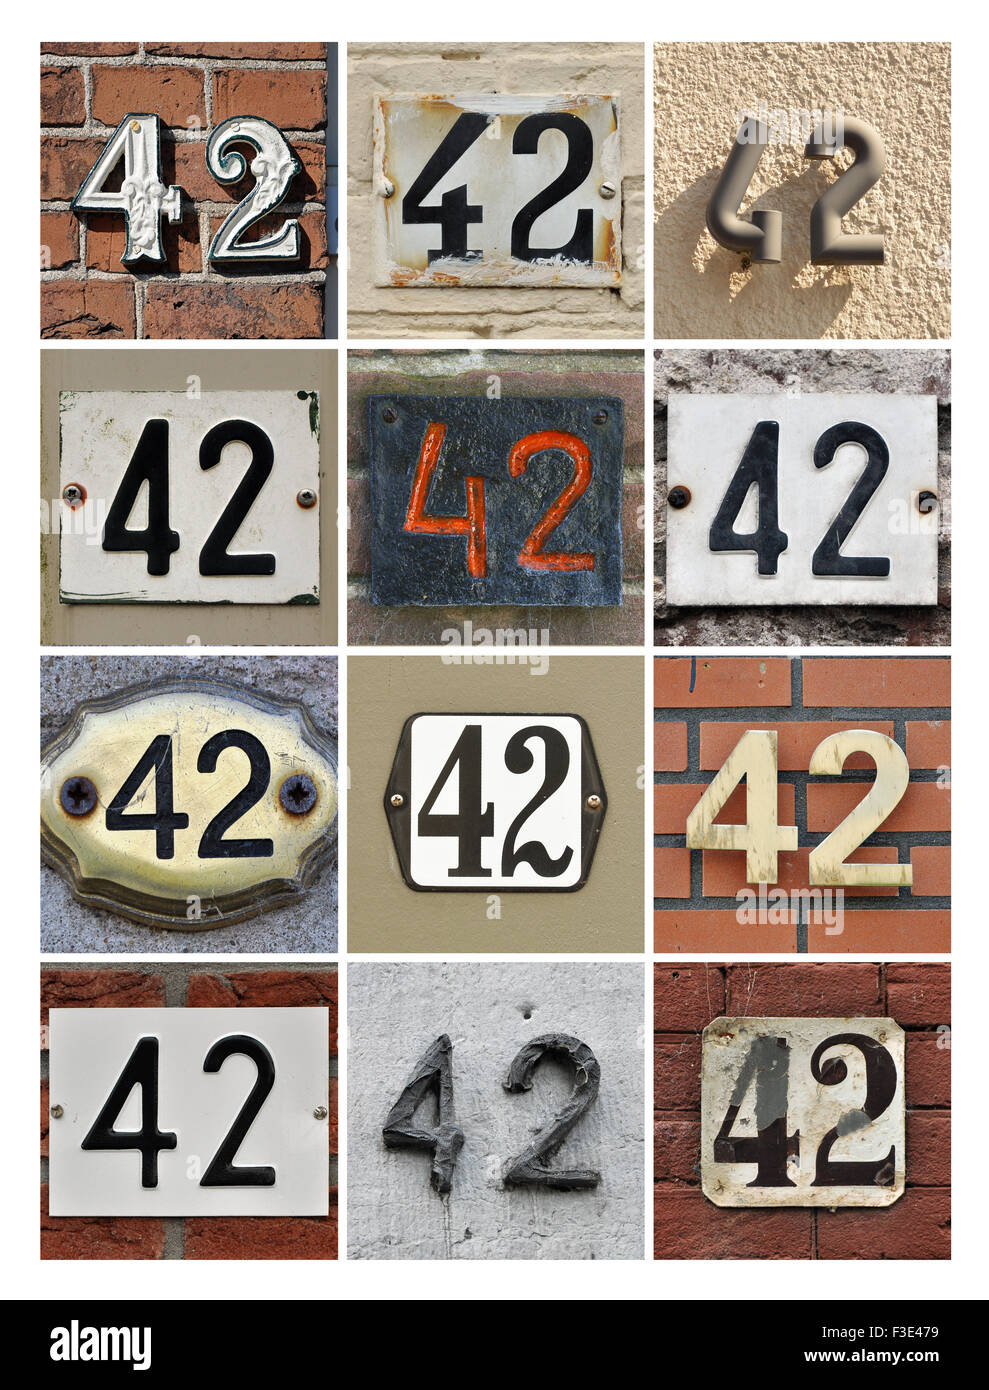 Number 42 - Collage of House Numbers Forty-two - Stock Image